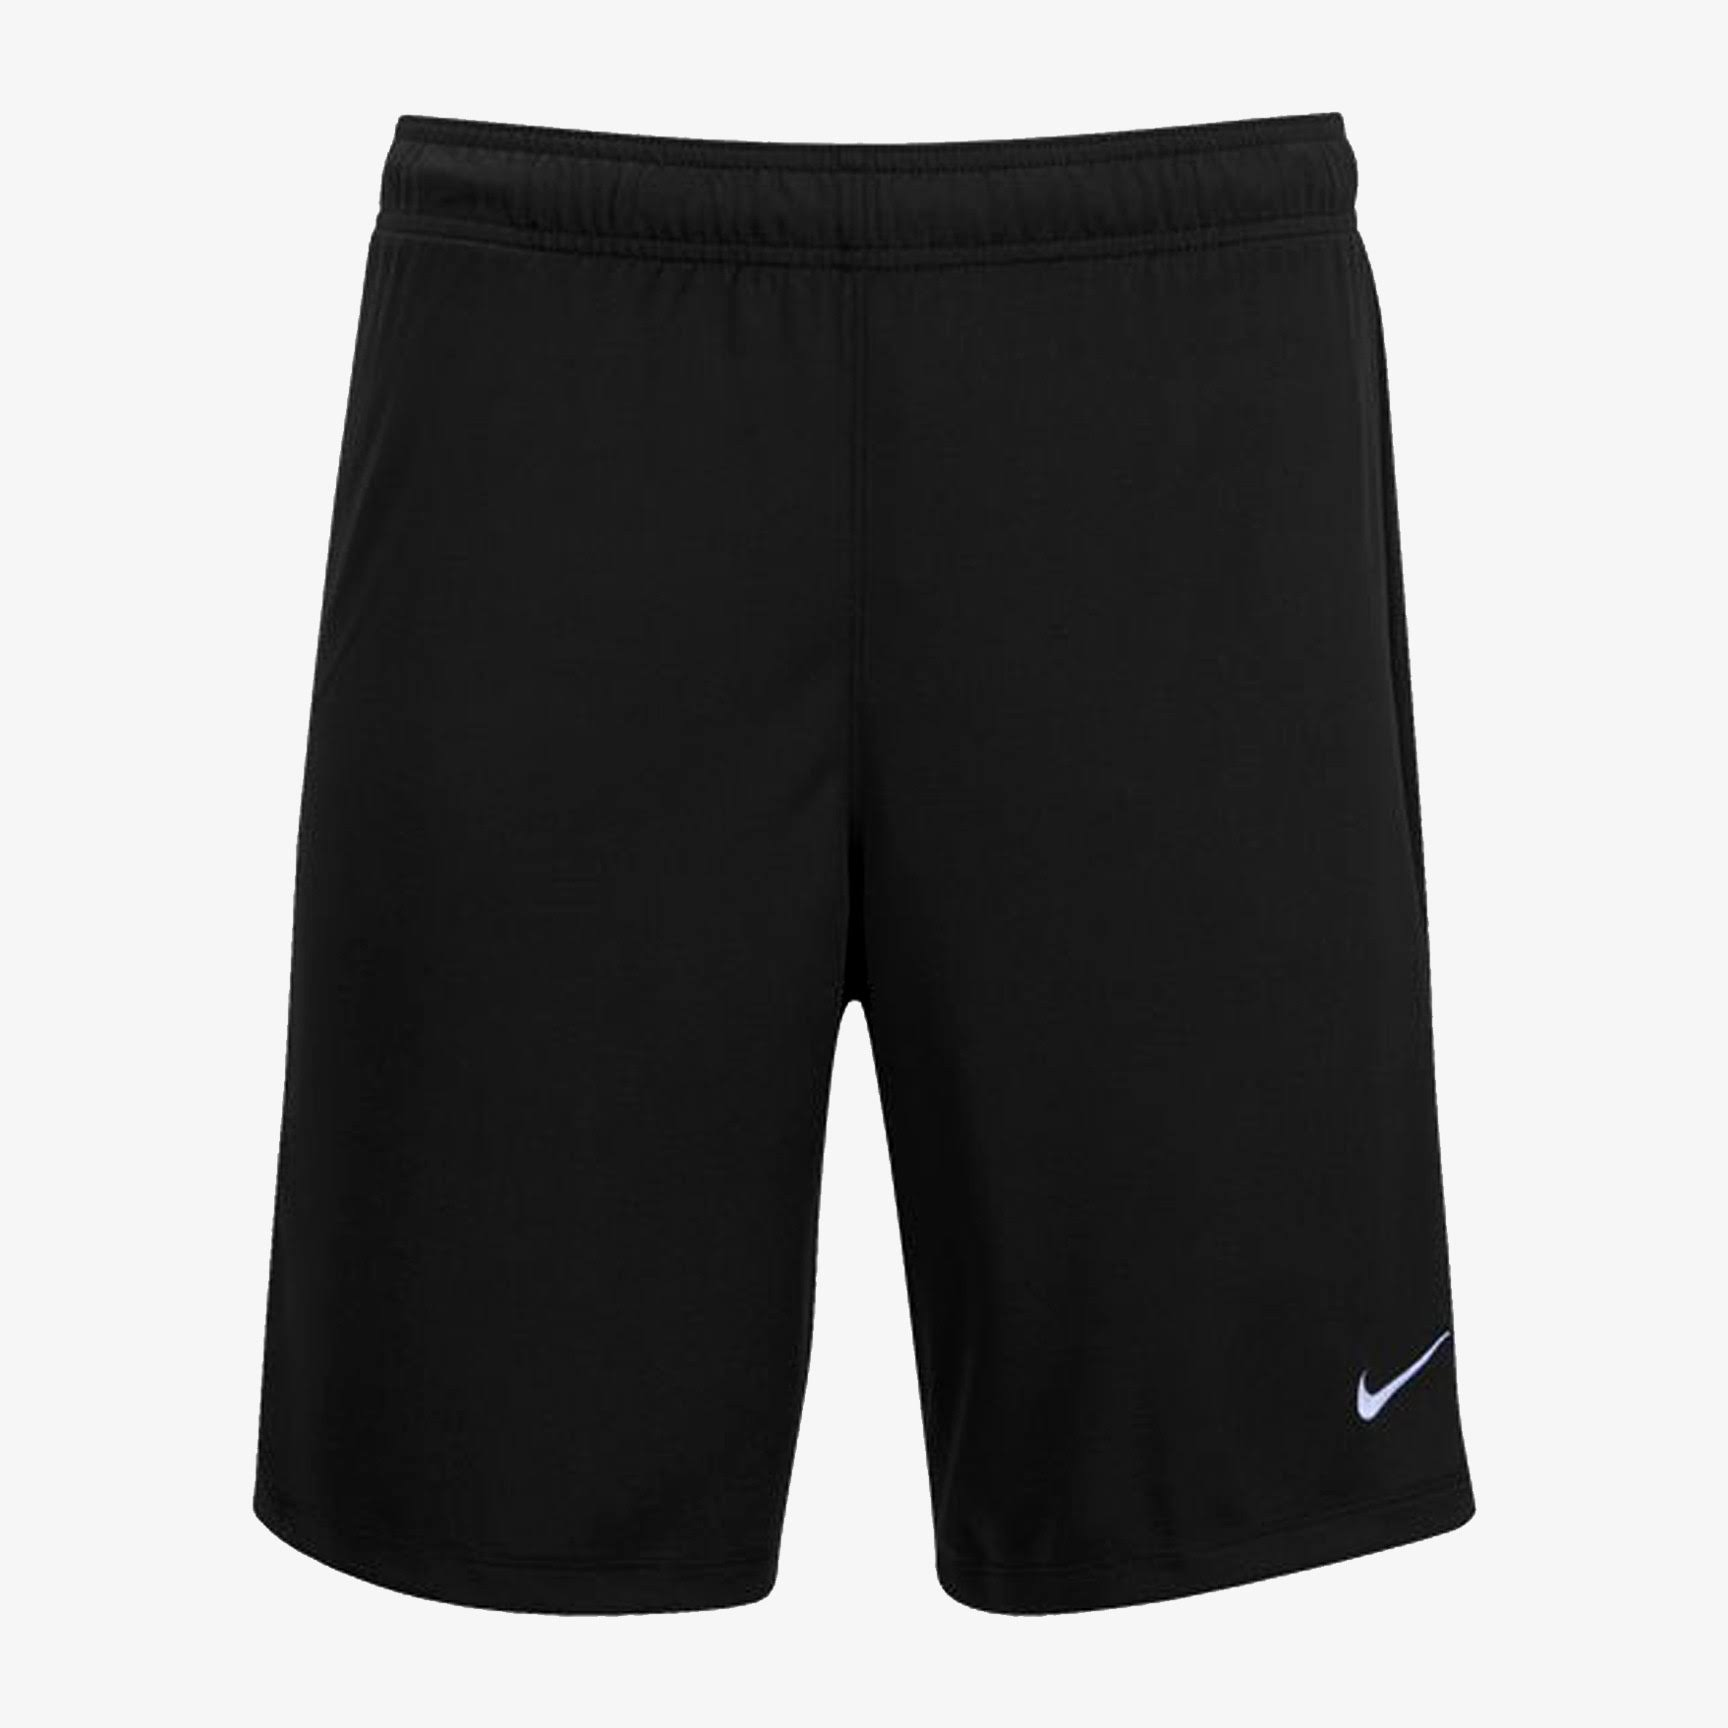 Nike Park II Short Youth Unisex Soccer Boys Girls Dri-fit Short - Black, Medium